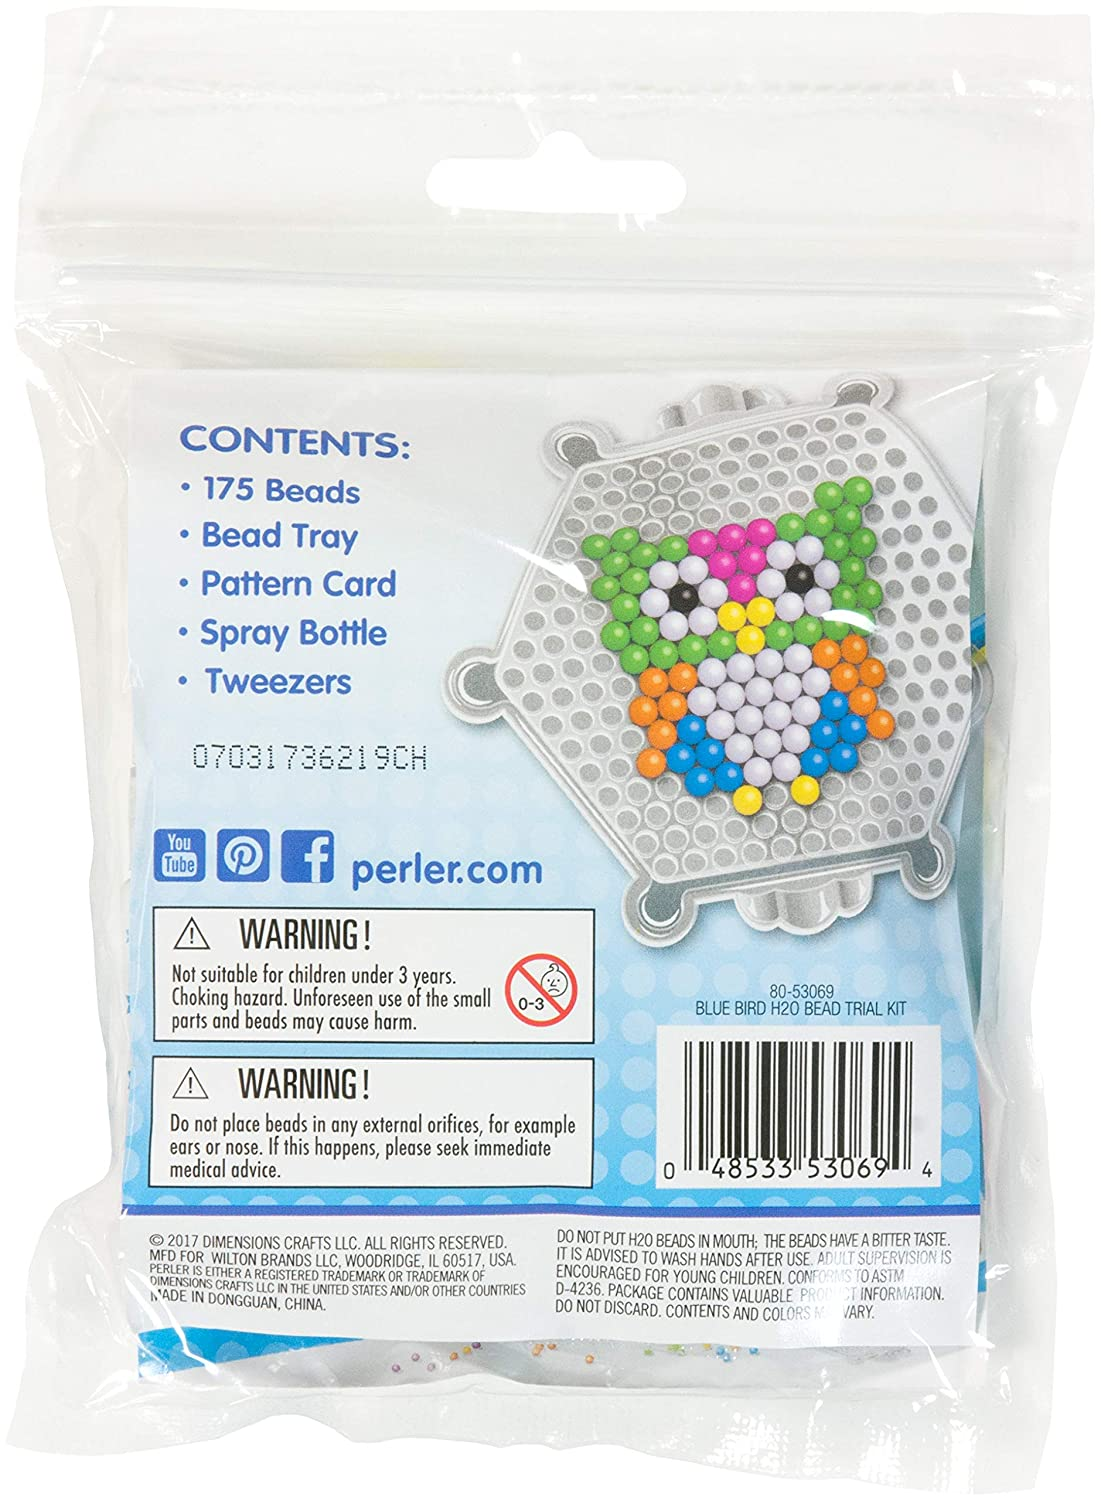 Perler Beads Bluebird and Owl Water Kit 5L X 6.75 H